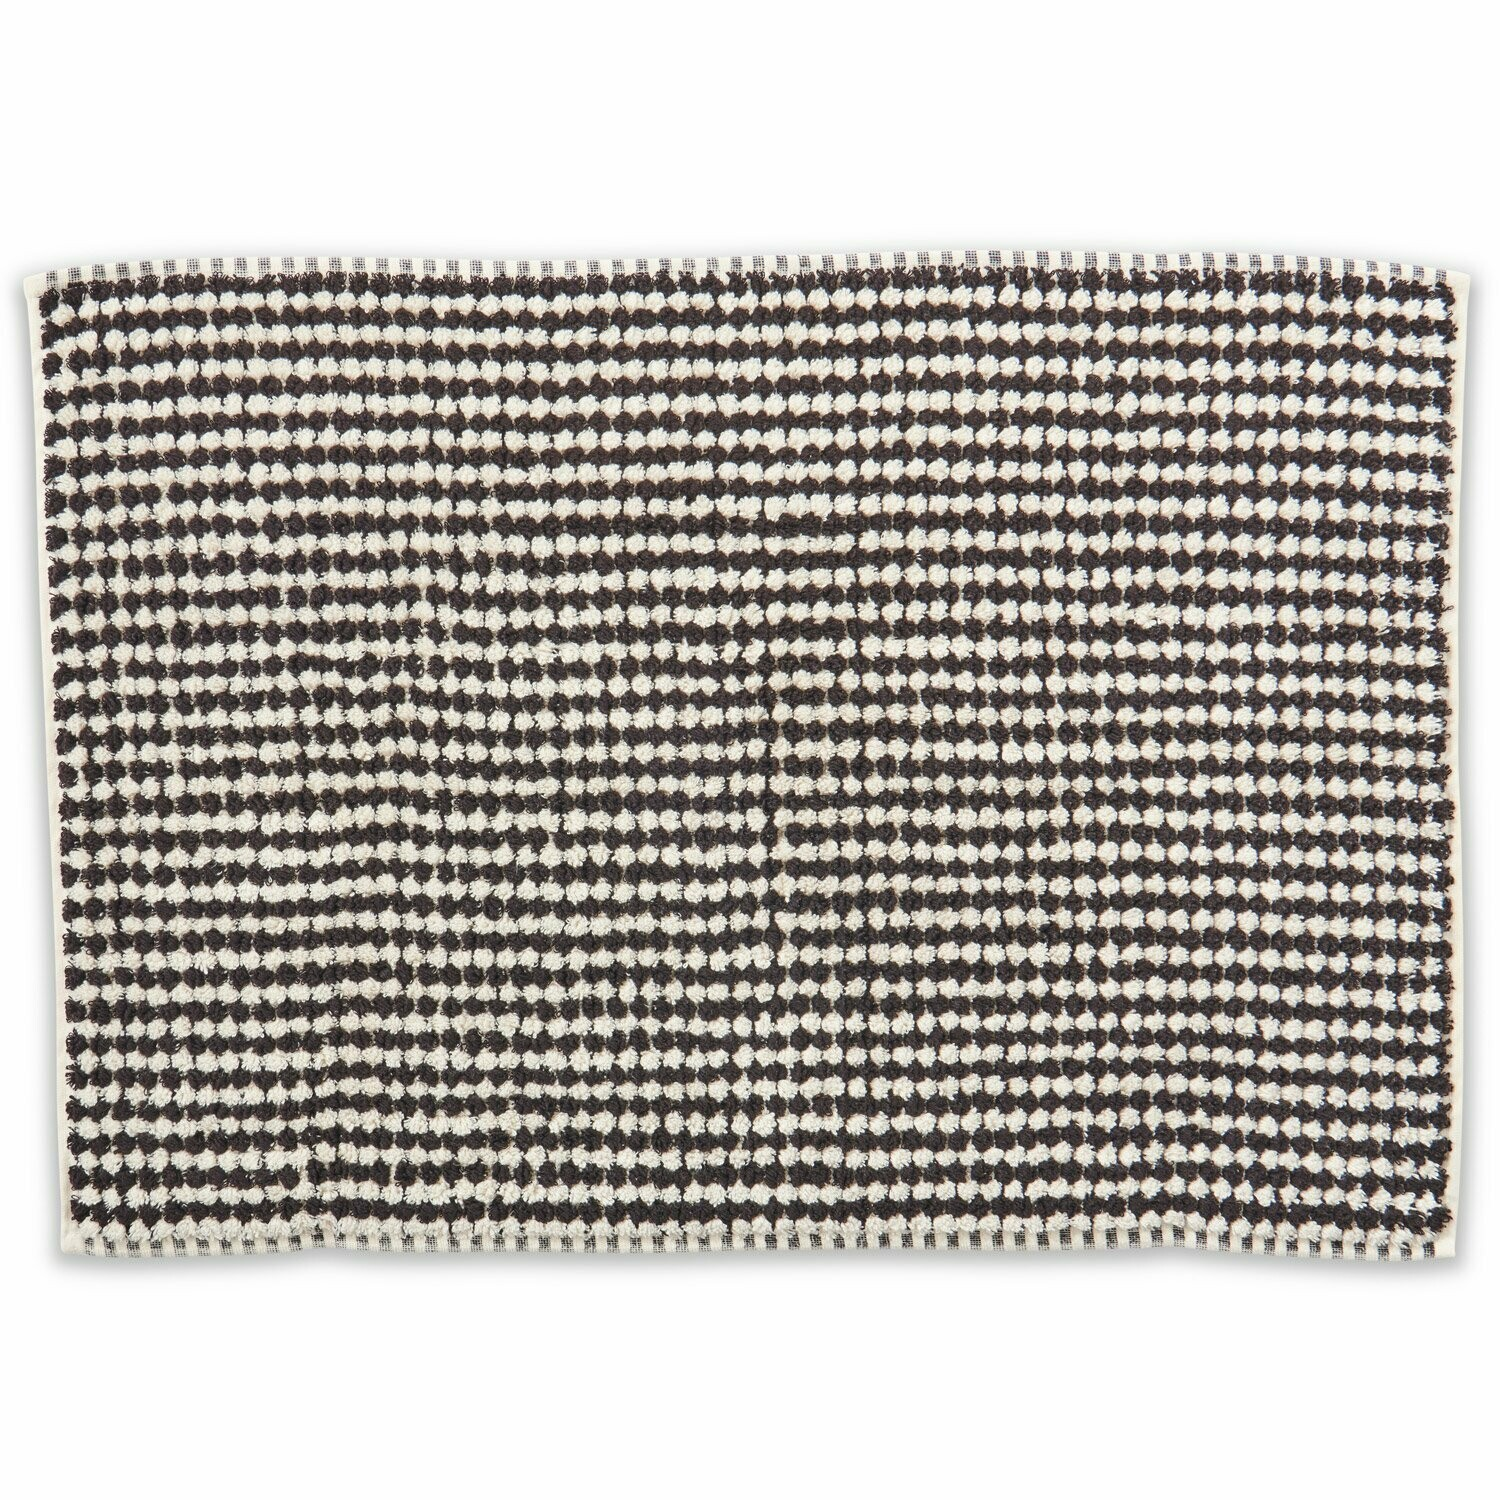 Turkish Towels - Bath Mat - Black & White Pebbles